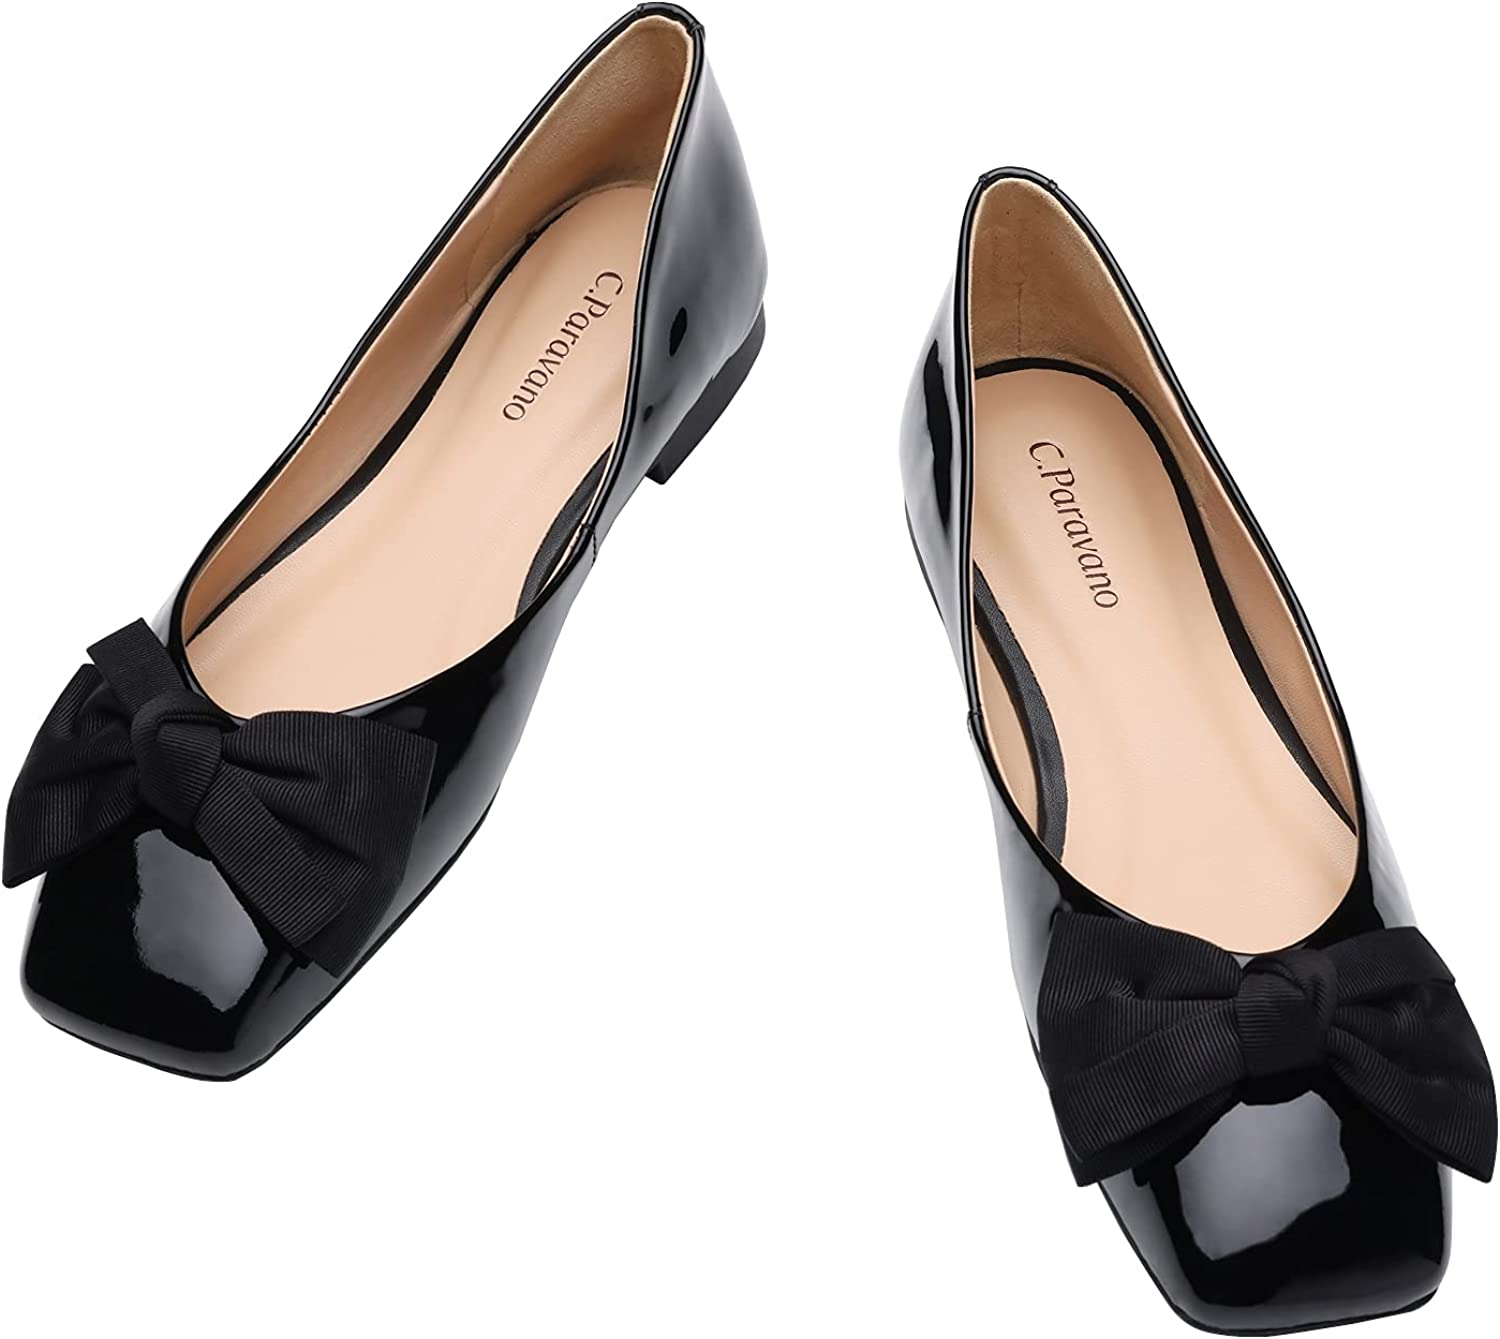 History of Victorian Boots & Shoes for Women C.PARAVANO Womens Flats I Square Toe Shoes for Women I Black Flats I Womens Flat Shoes I Flat Shoes Women I Womens Patent Leather Shoes I Leather Flats for Women  AT vintagedancer.com